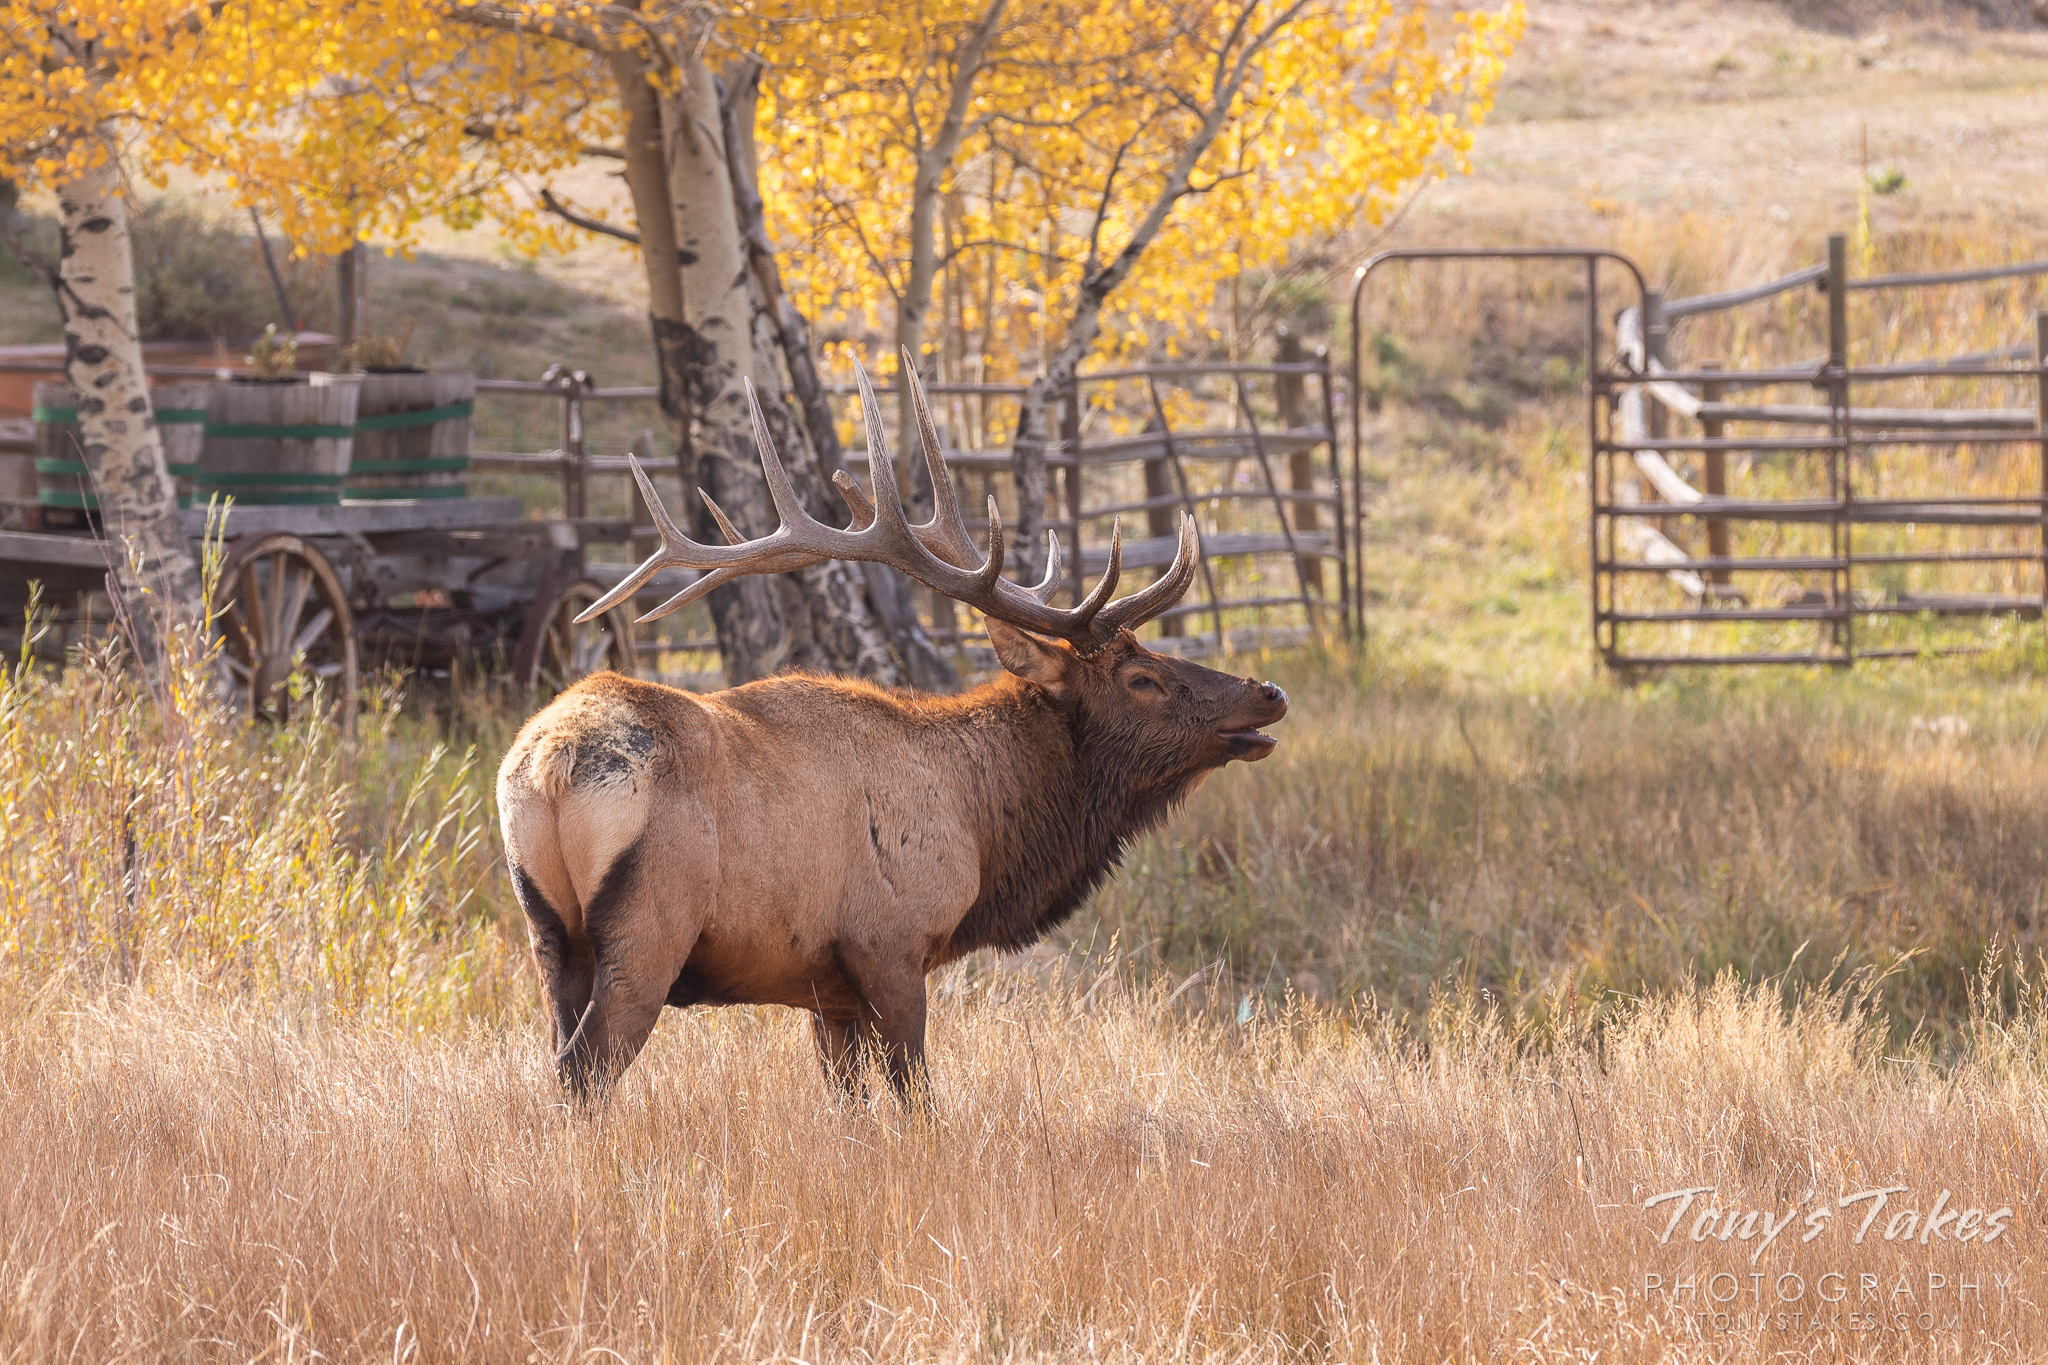 Bull Elk at the ranch for #WapitiWednesday. Normally I wouldn't like the man-made stuff in the background…